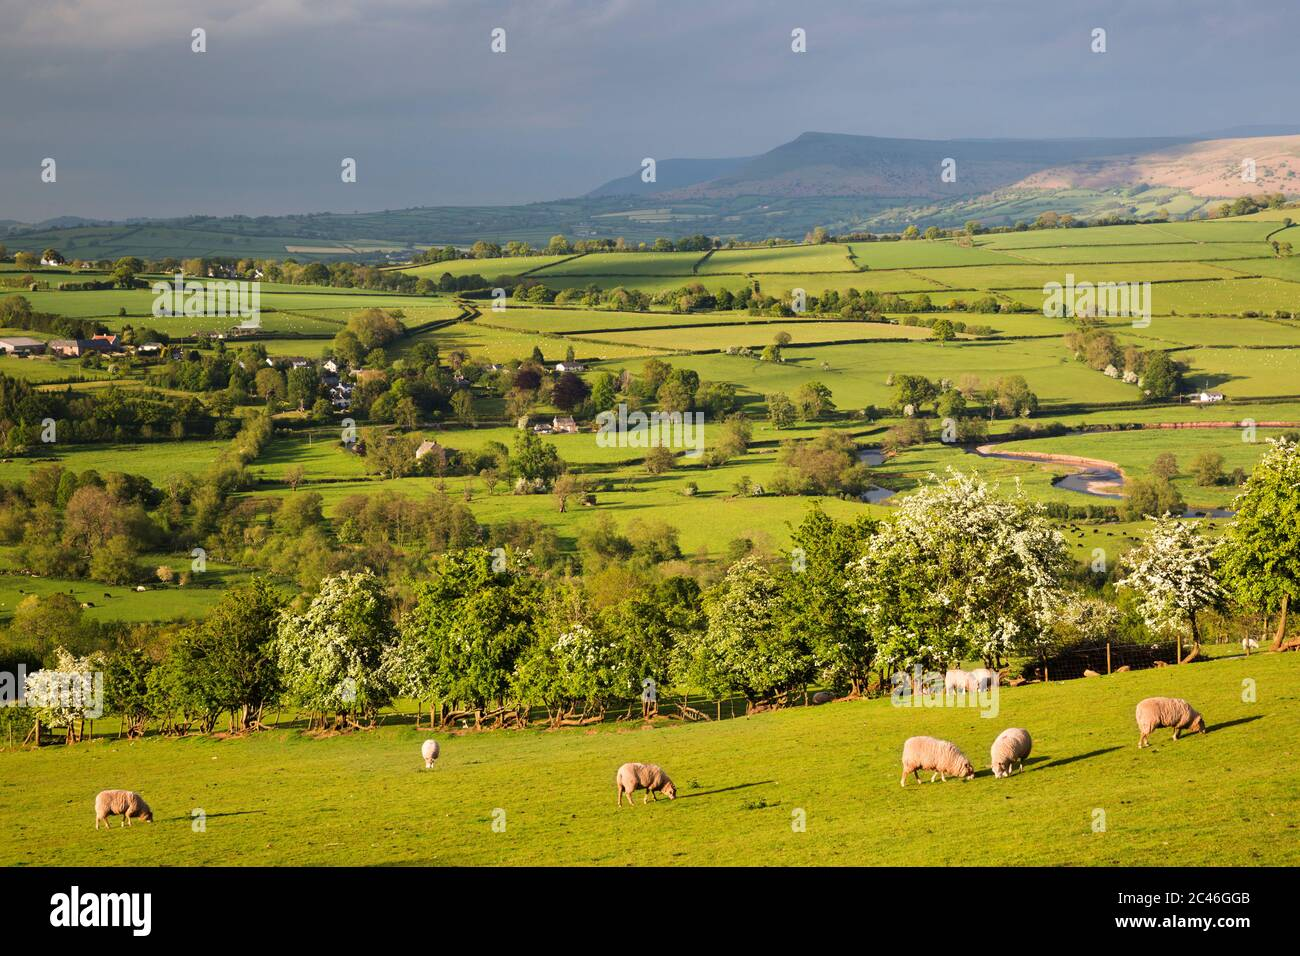 View over Usk Valley to Mynydd Llangorse, Talybont-on-Usk, Brecon Beacons National Park, Powys, Wales, United Kingdom, Europe Stock Photo